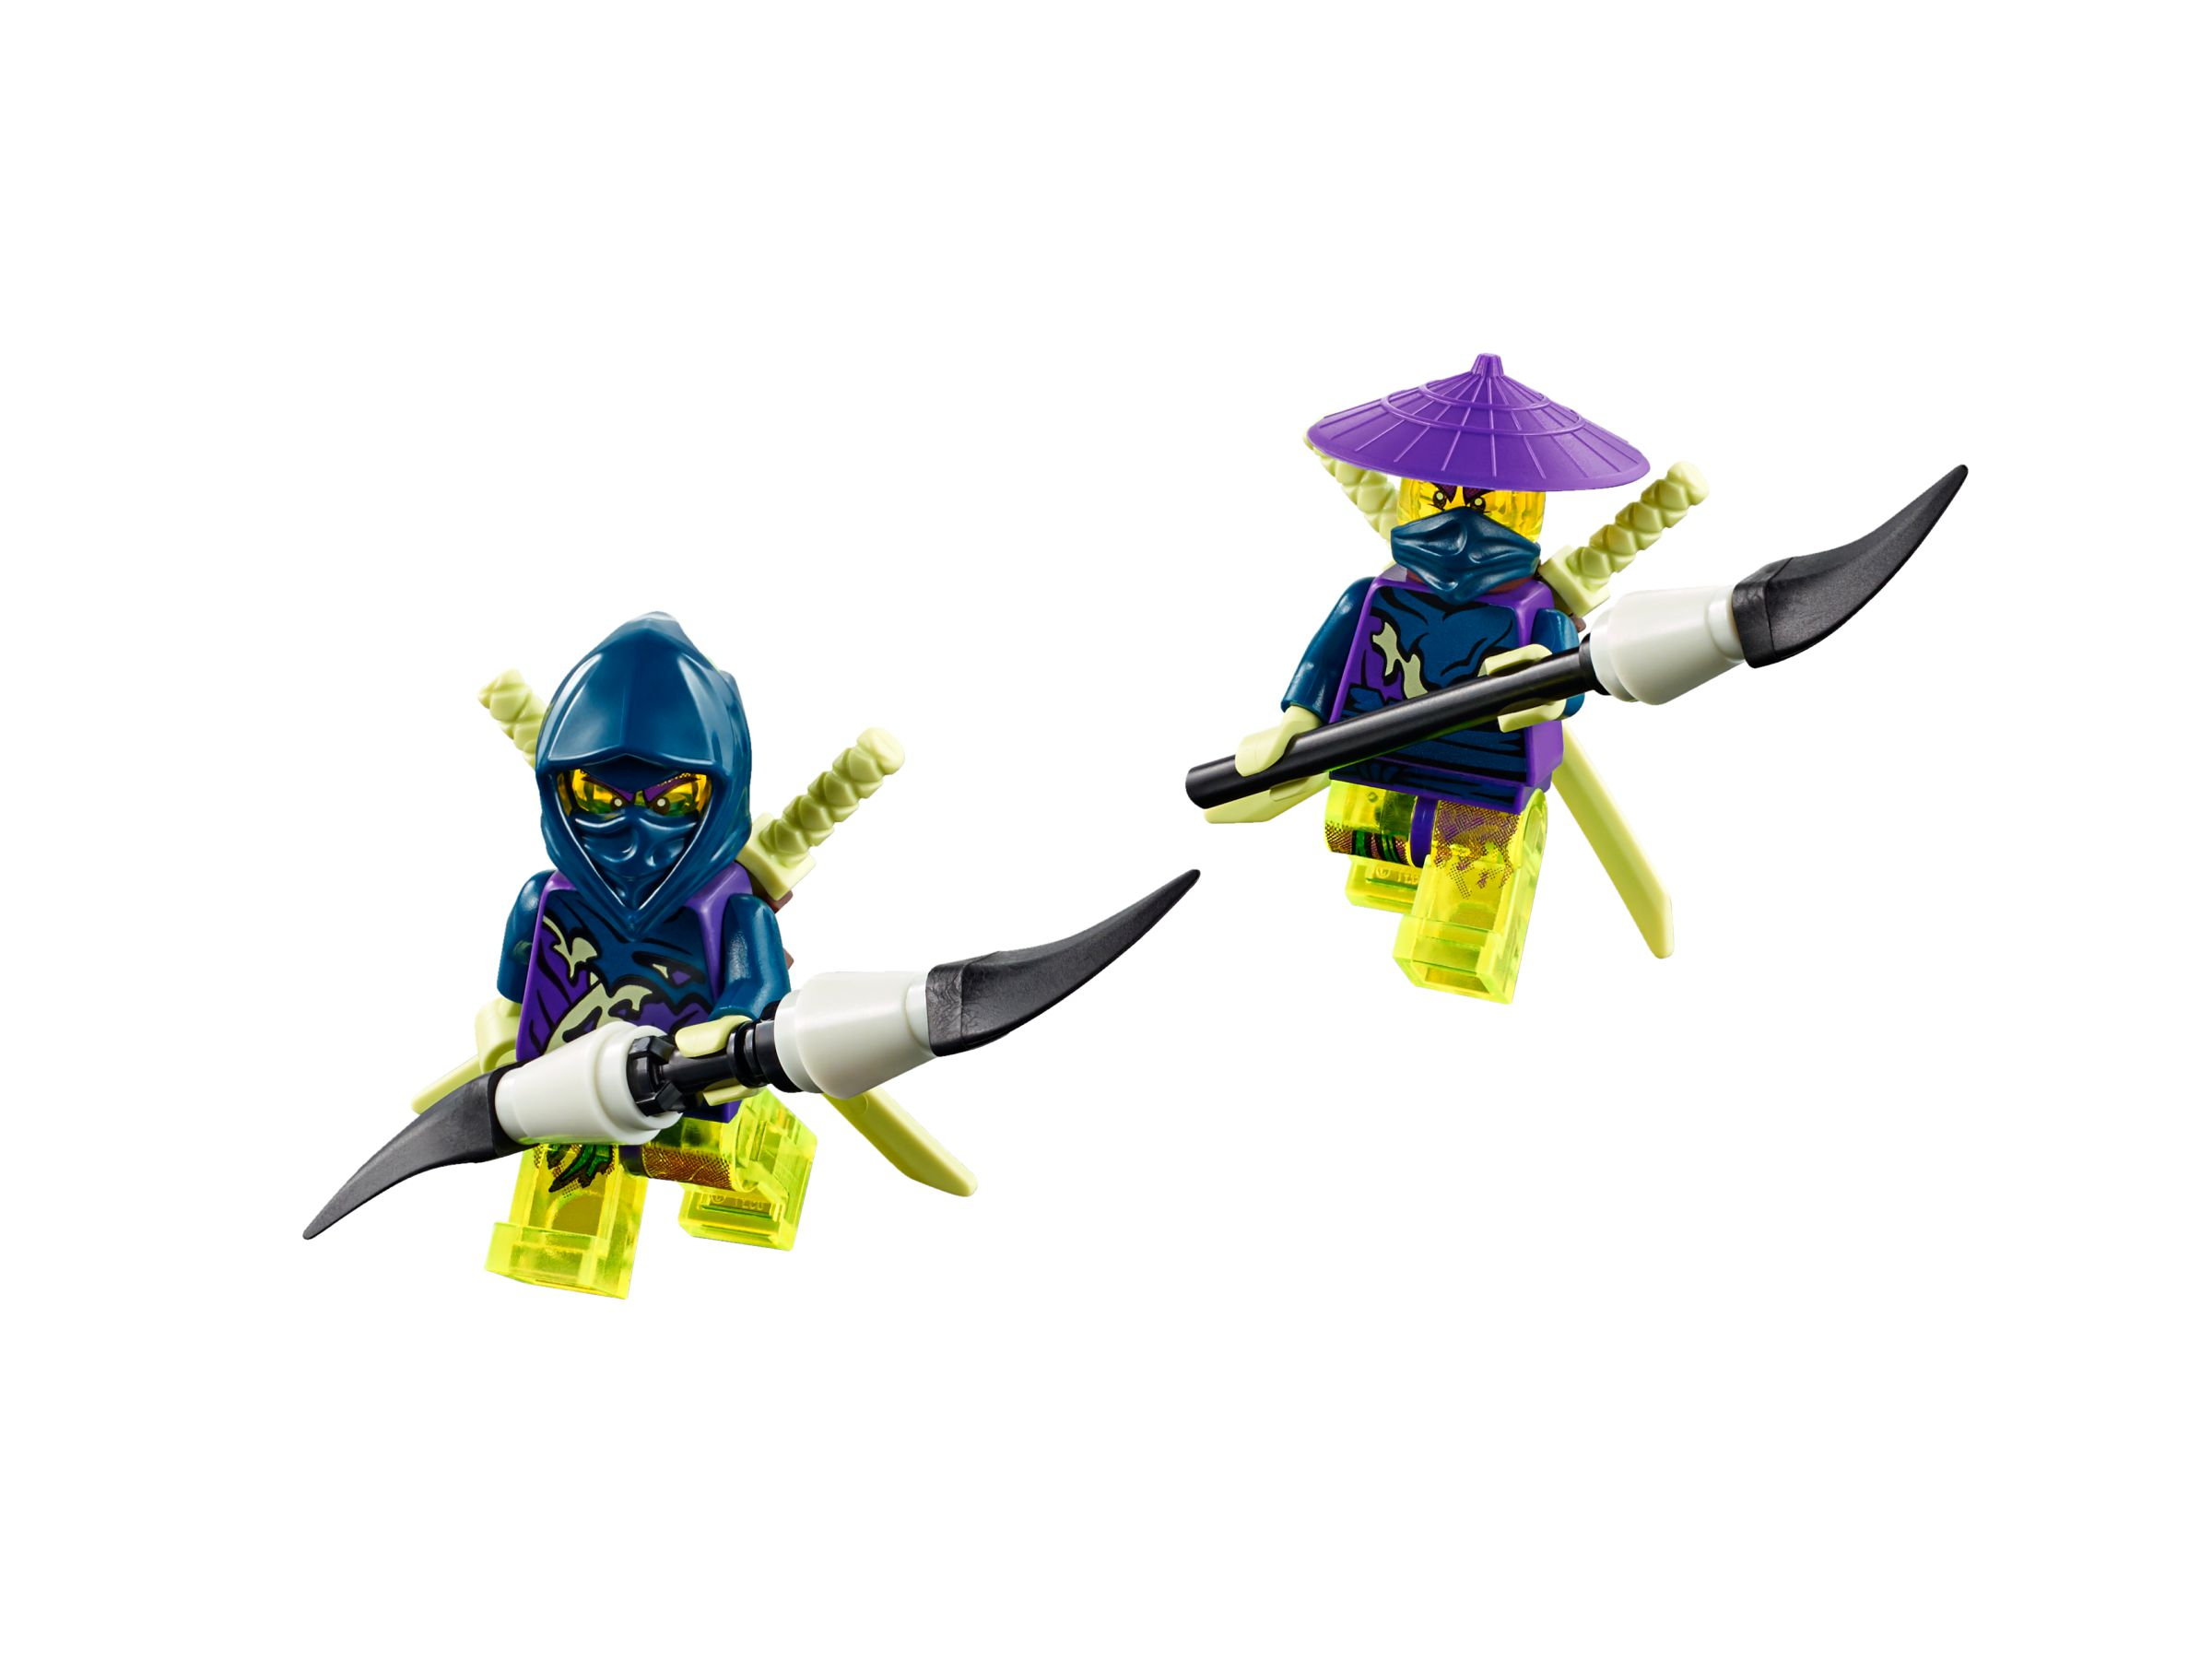 lego 70736 angriff des moro drachens ninjago 2015 attack of the morro dragon brickmerge. Black Bedroom Furniture Sets. Home Design Ideas